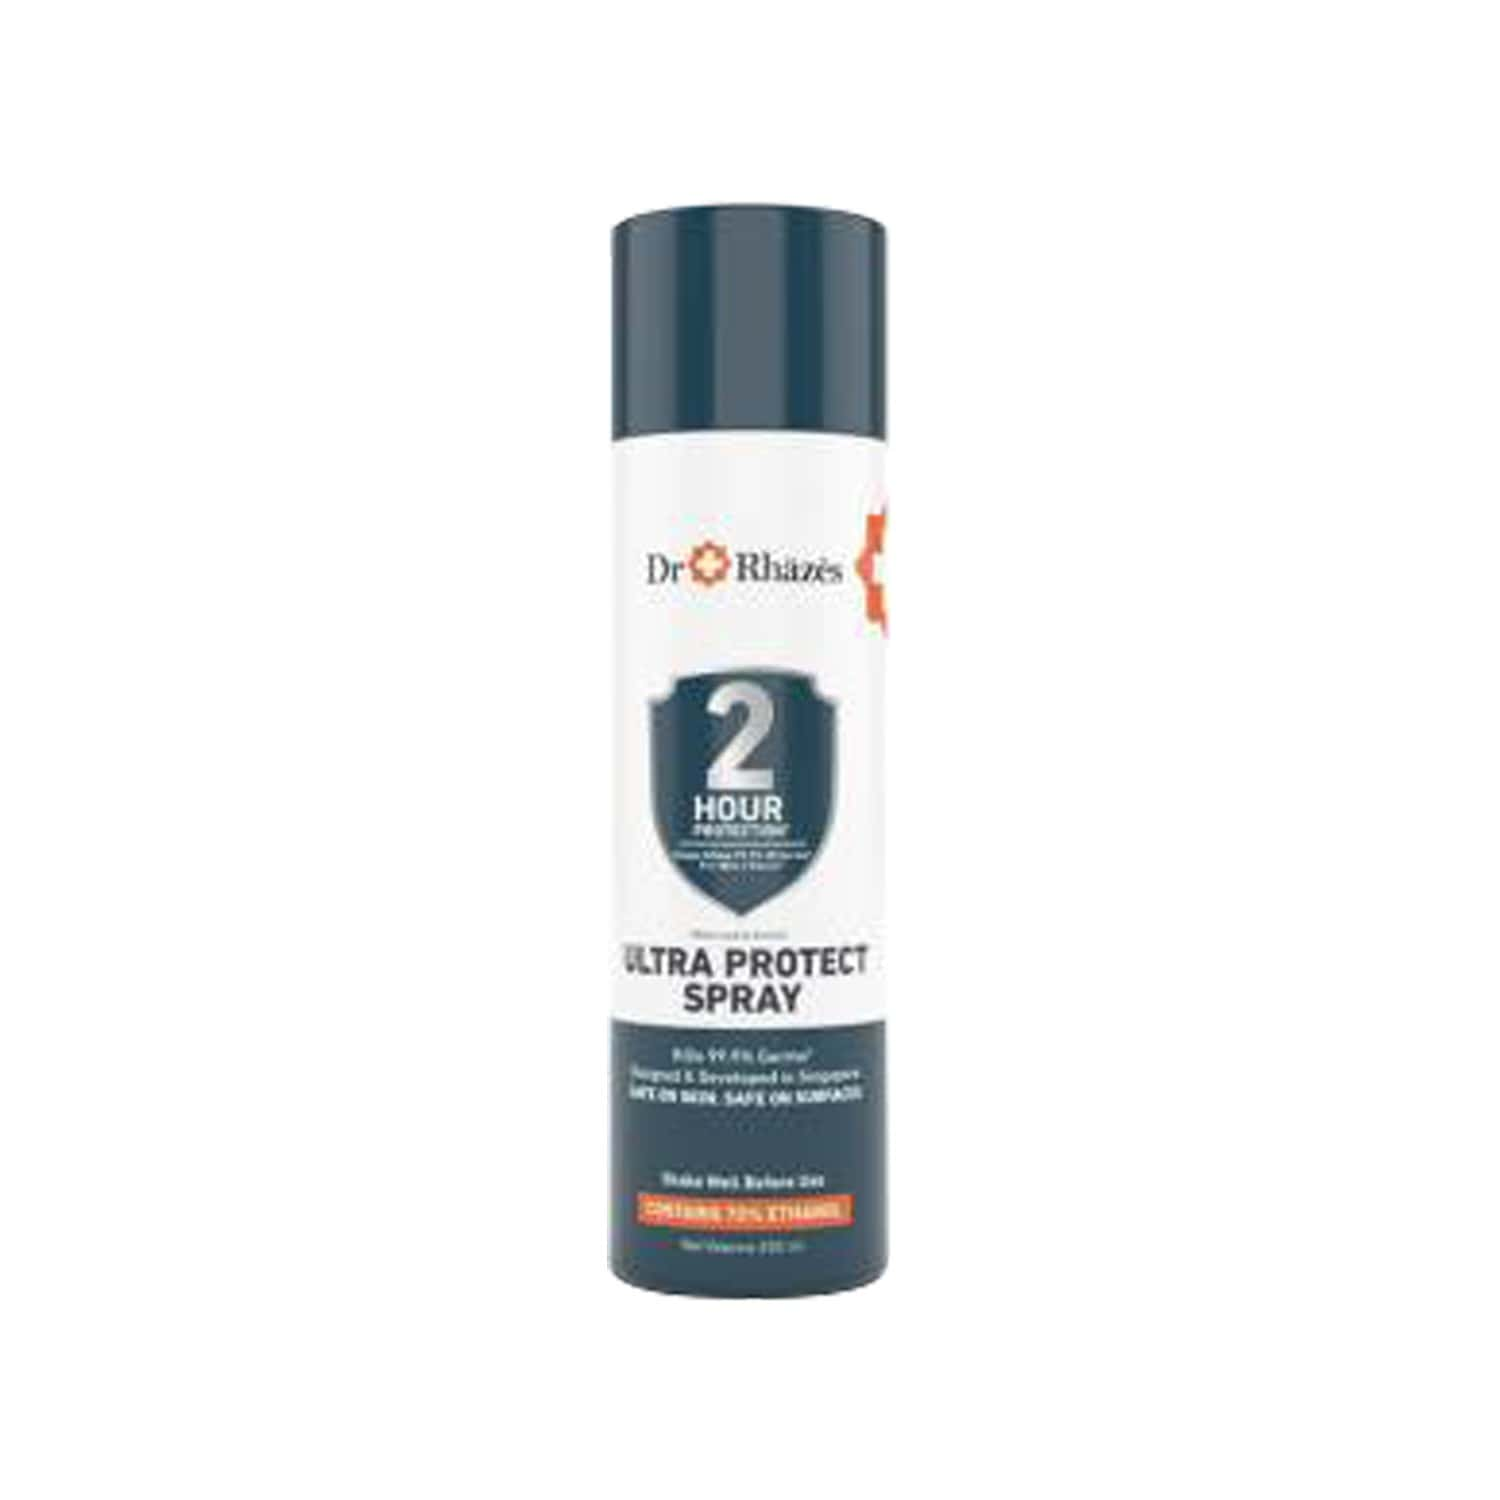 Dr Rhazes Ultra Protect Spray   2 Hour Protection (250 Ml)